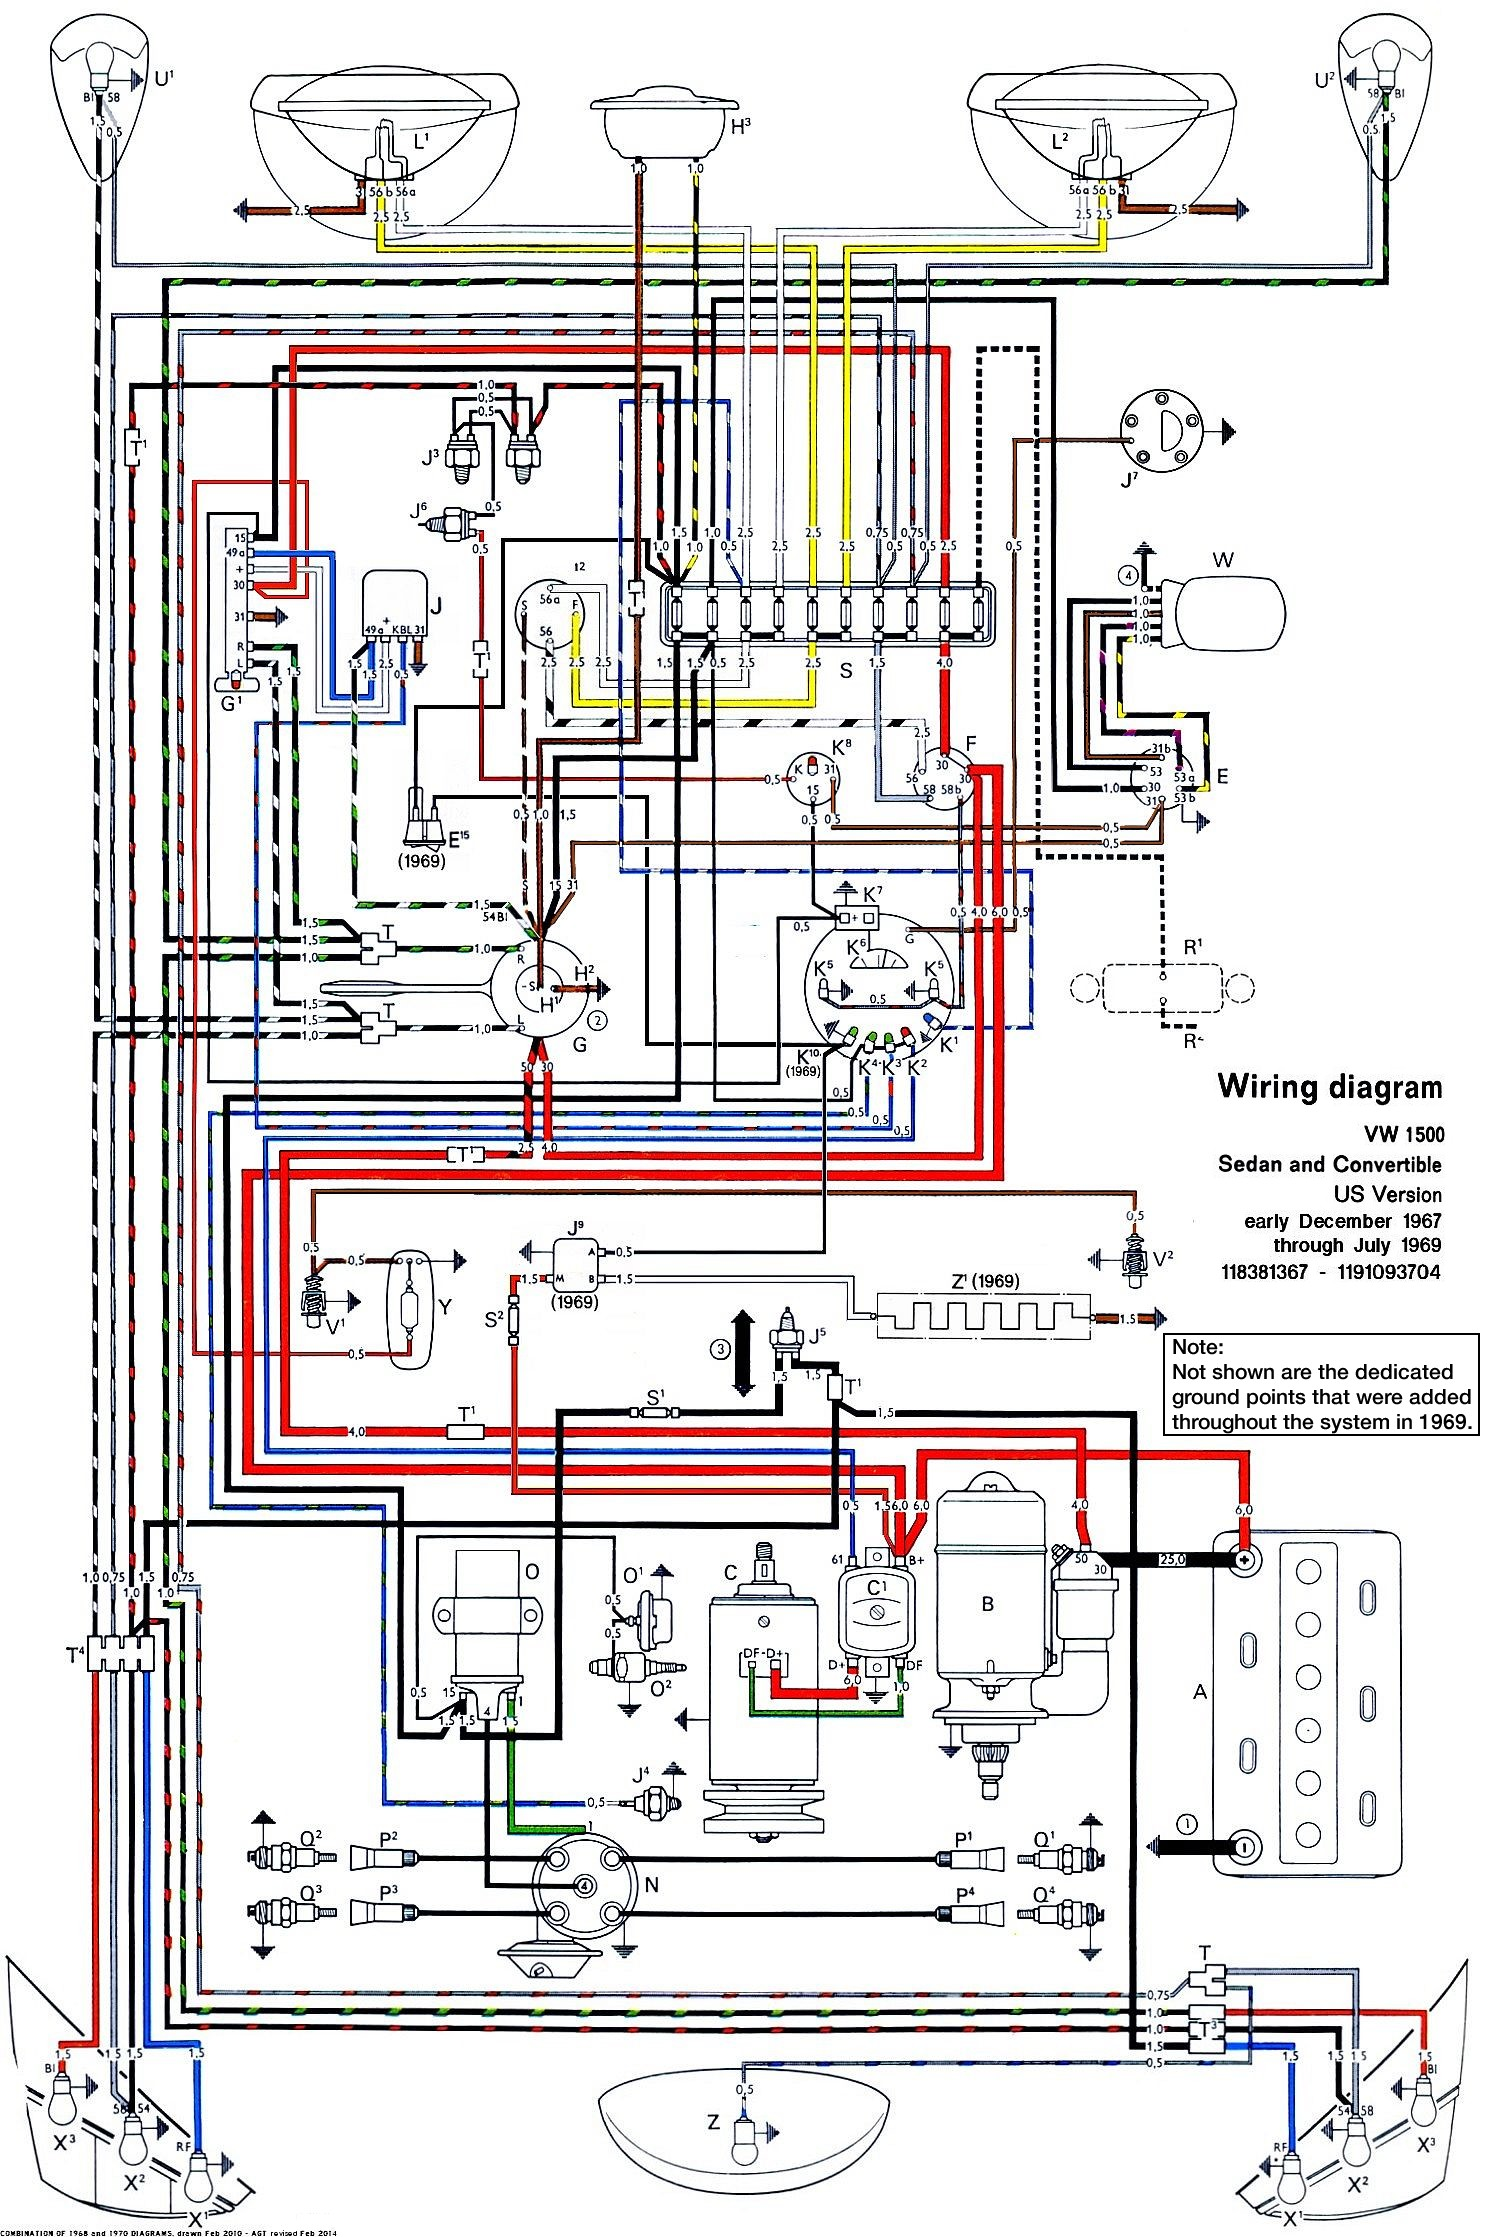 Toyota 4runner Throttle Body Diagram moreover Vw Mkv Headlight Wiring Diagram in addition T1398 Donde Se Encuentra El Rele Del Limpiaparabrisas Delantero moreover Vw T4 Wiring Diagram as well Vw Beetle Turn Signal Wiring Diagram. on 2000 vw beetle electrical diagram